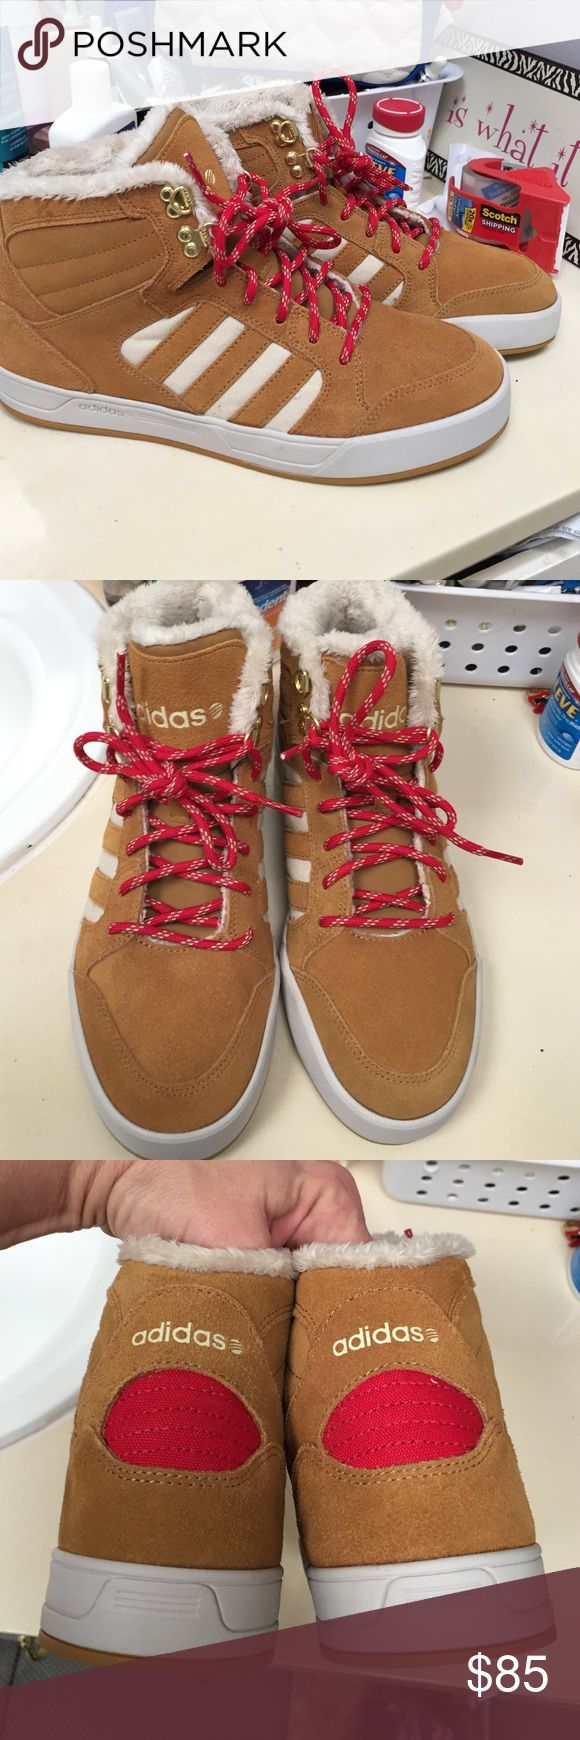 Adidas NEO Hightops Brand new. Adidas tan Ortholite NEO Hightops. Super cute. Size 9 Adidas Shoes